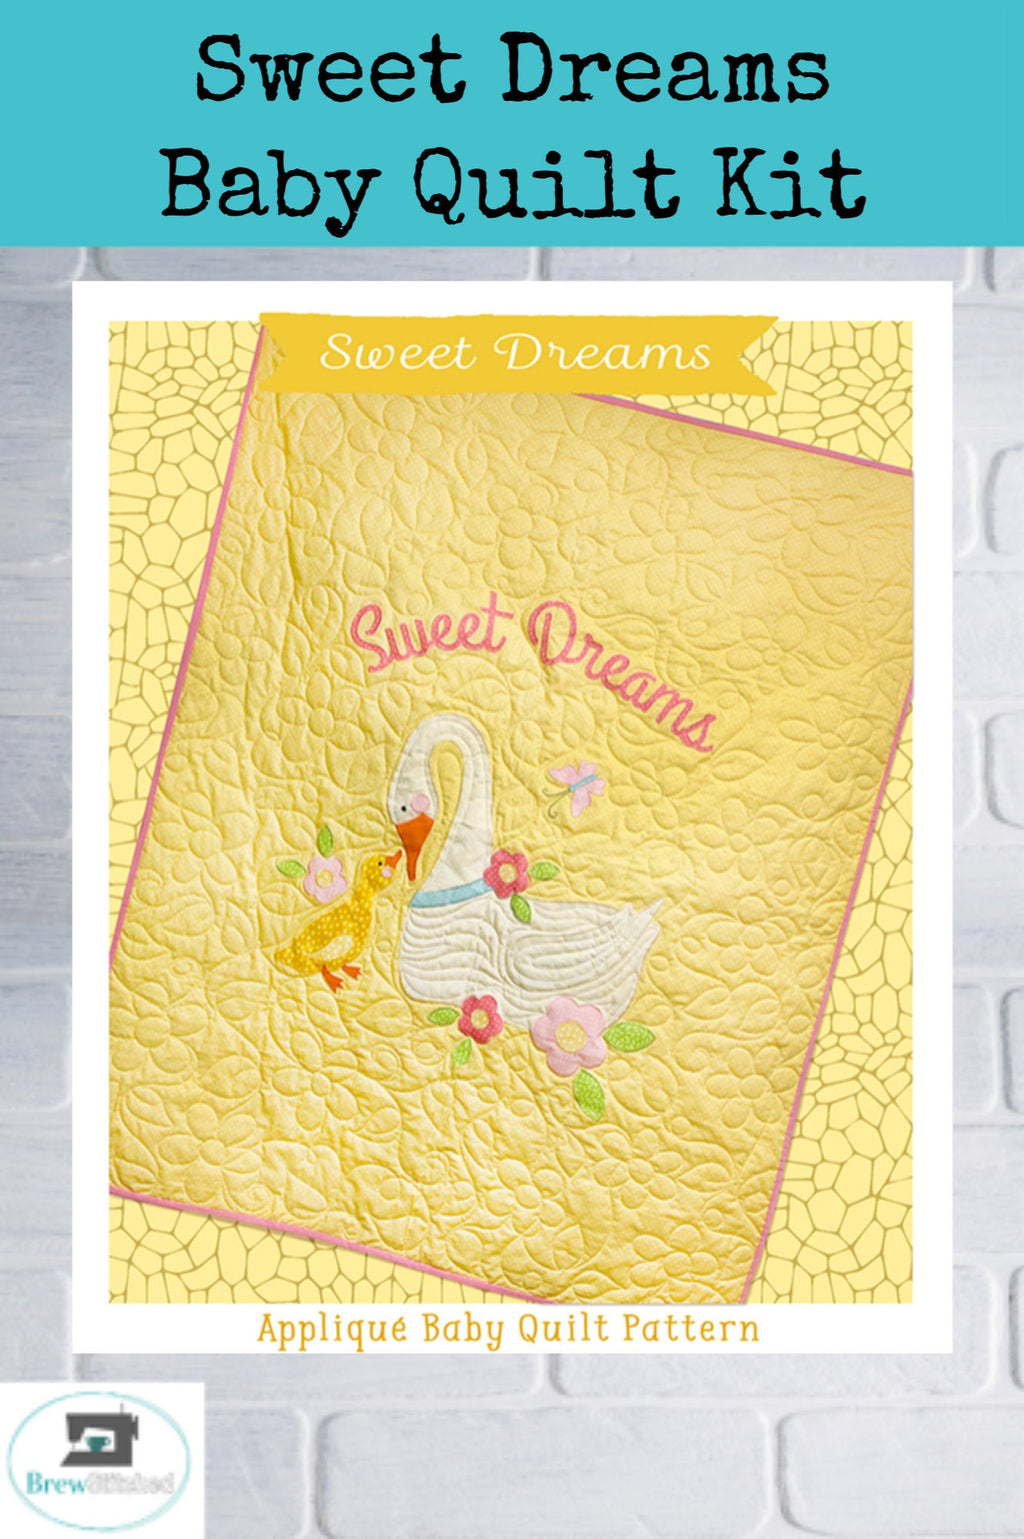 Sweet Dreams Applique Baby Quilt Kit - brewstitched.com